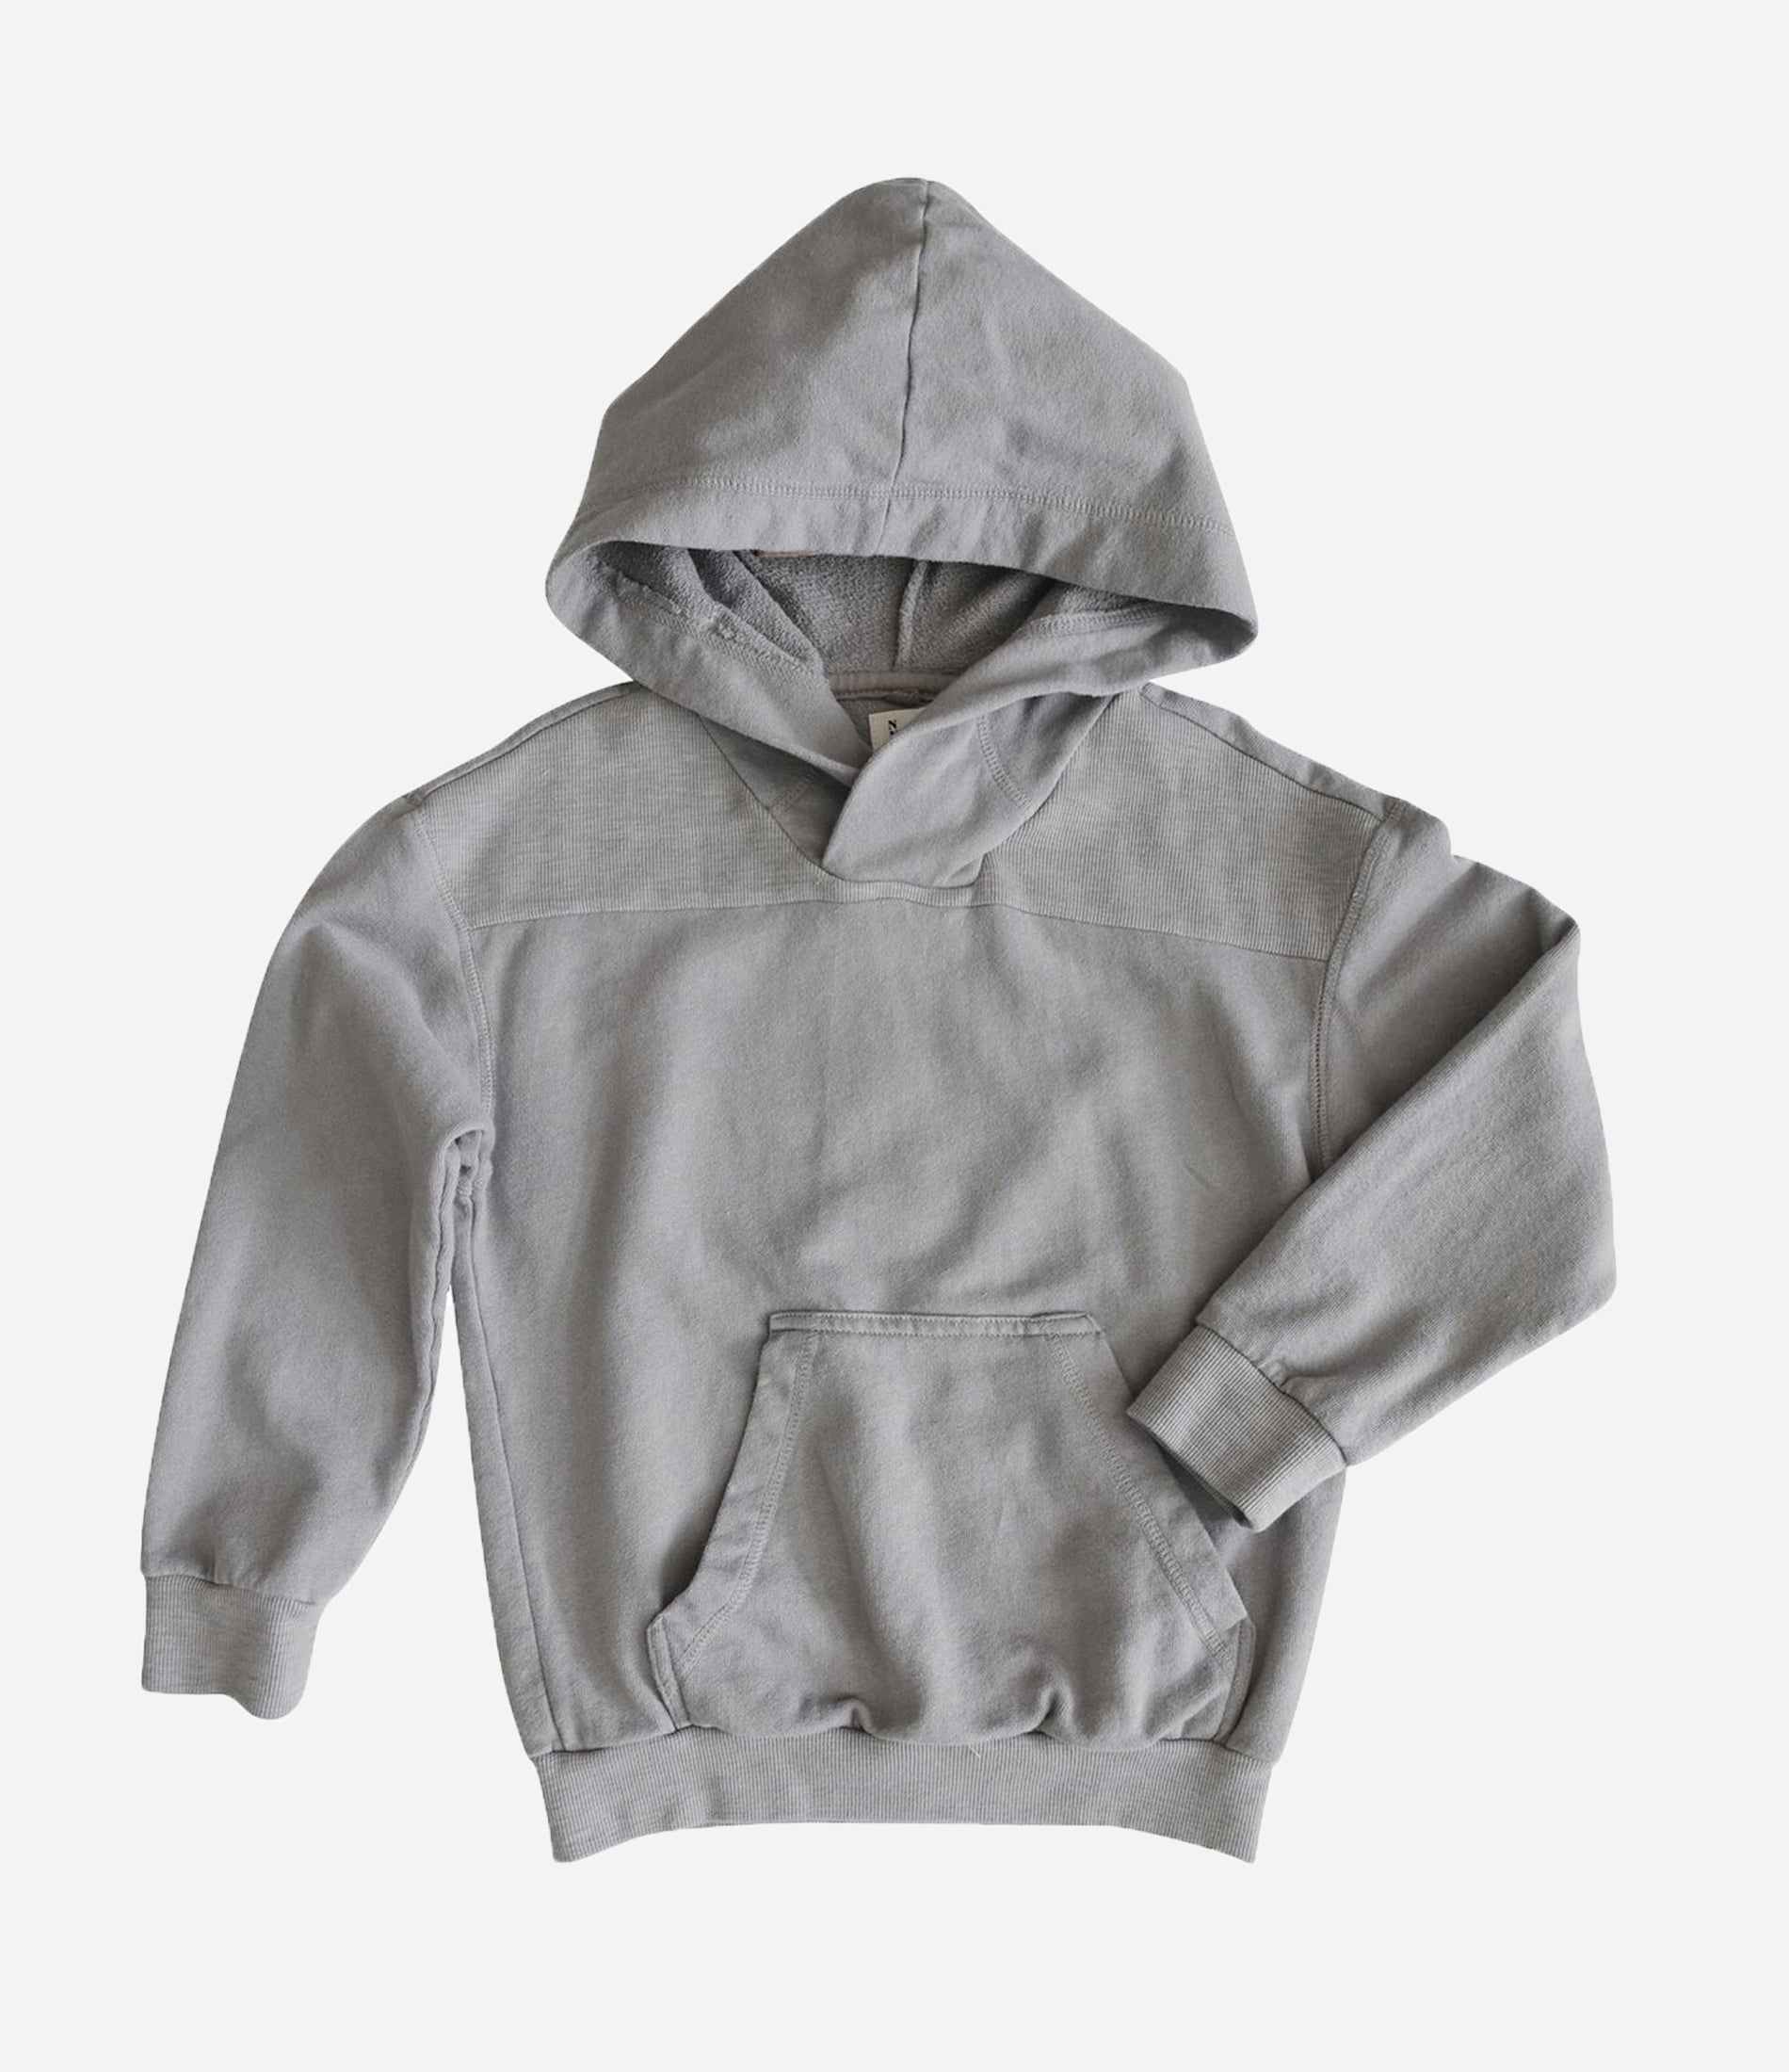 Nico Nico Absolute Hoodie in Taupe. Unisex, girls, boys. Organic cotton. Cool clothing for kids. For the ultimate chill vibes. Find now at Made Mini NZ auckland